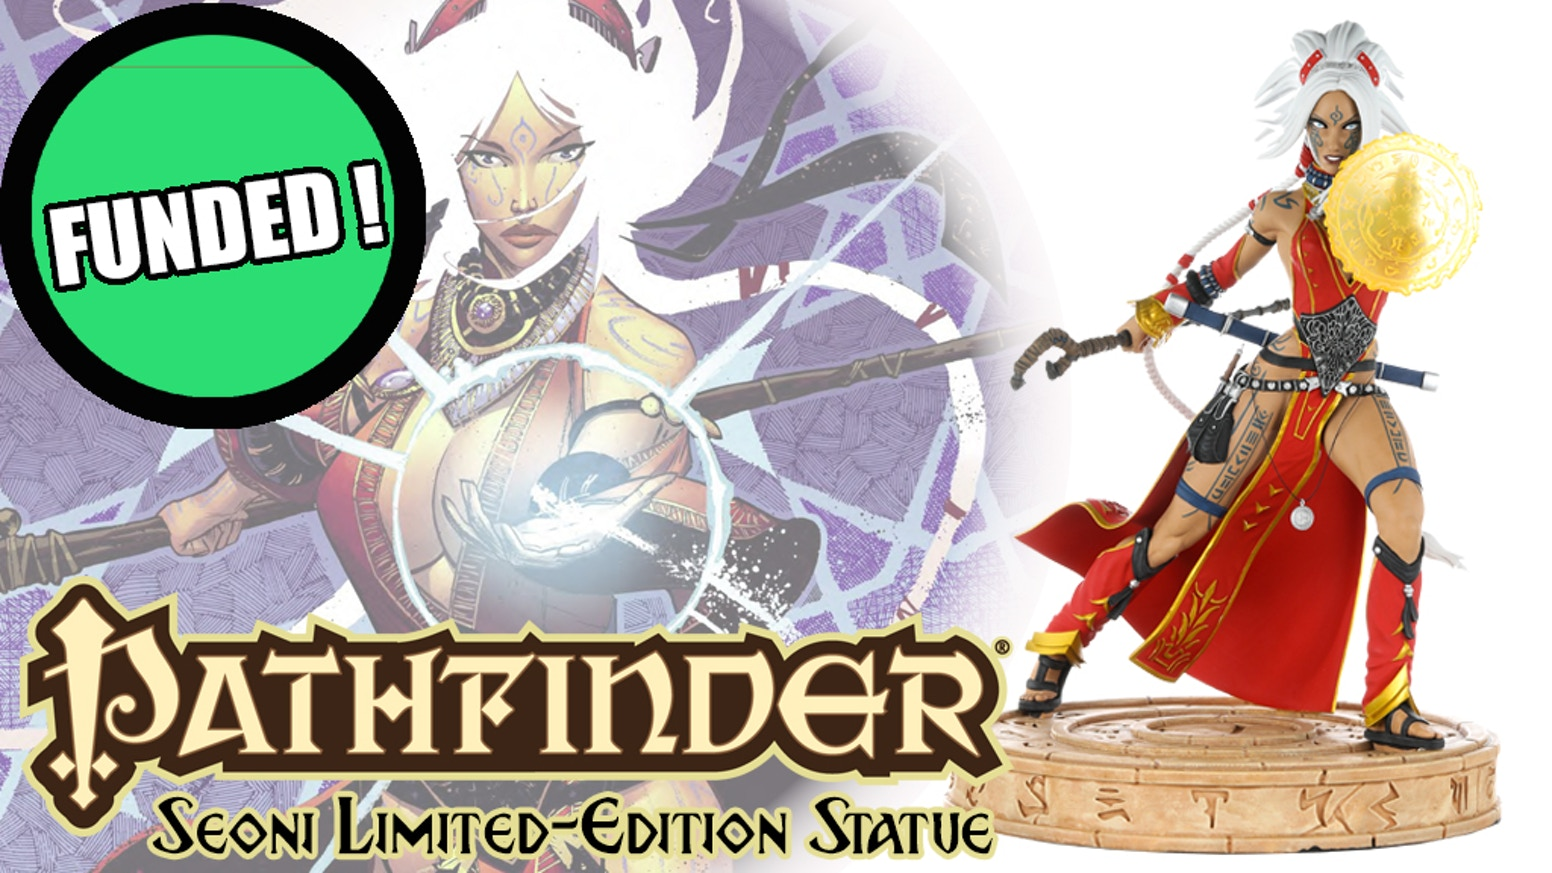 Pathfinder's first resin statue, featuring Seoni the sorcerer.